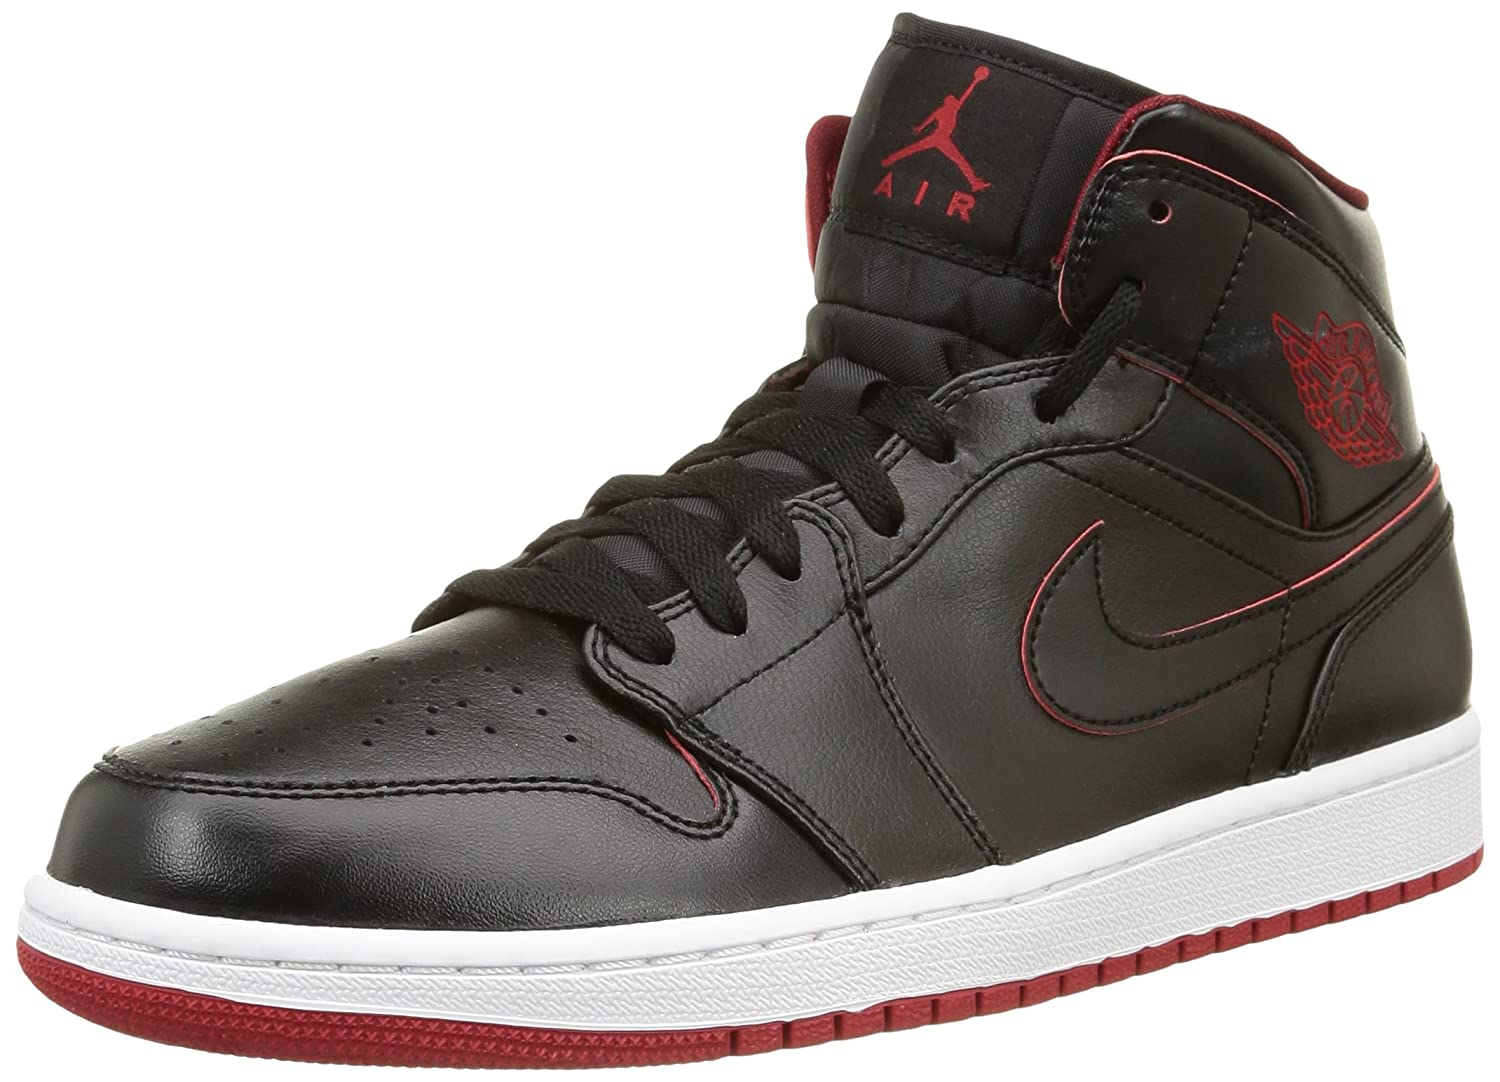 Black Black White Gym Red Nike - AIR JORDAN 1 MID